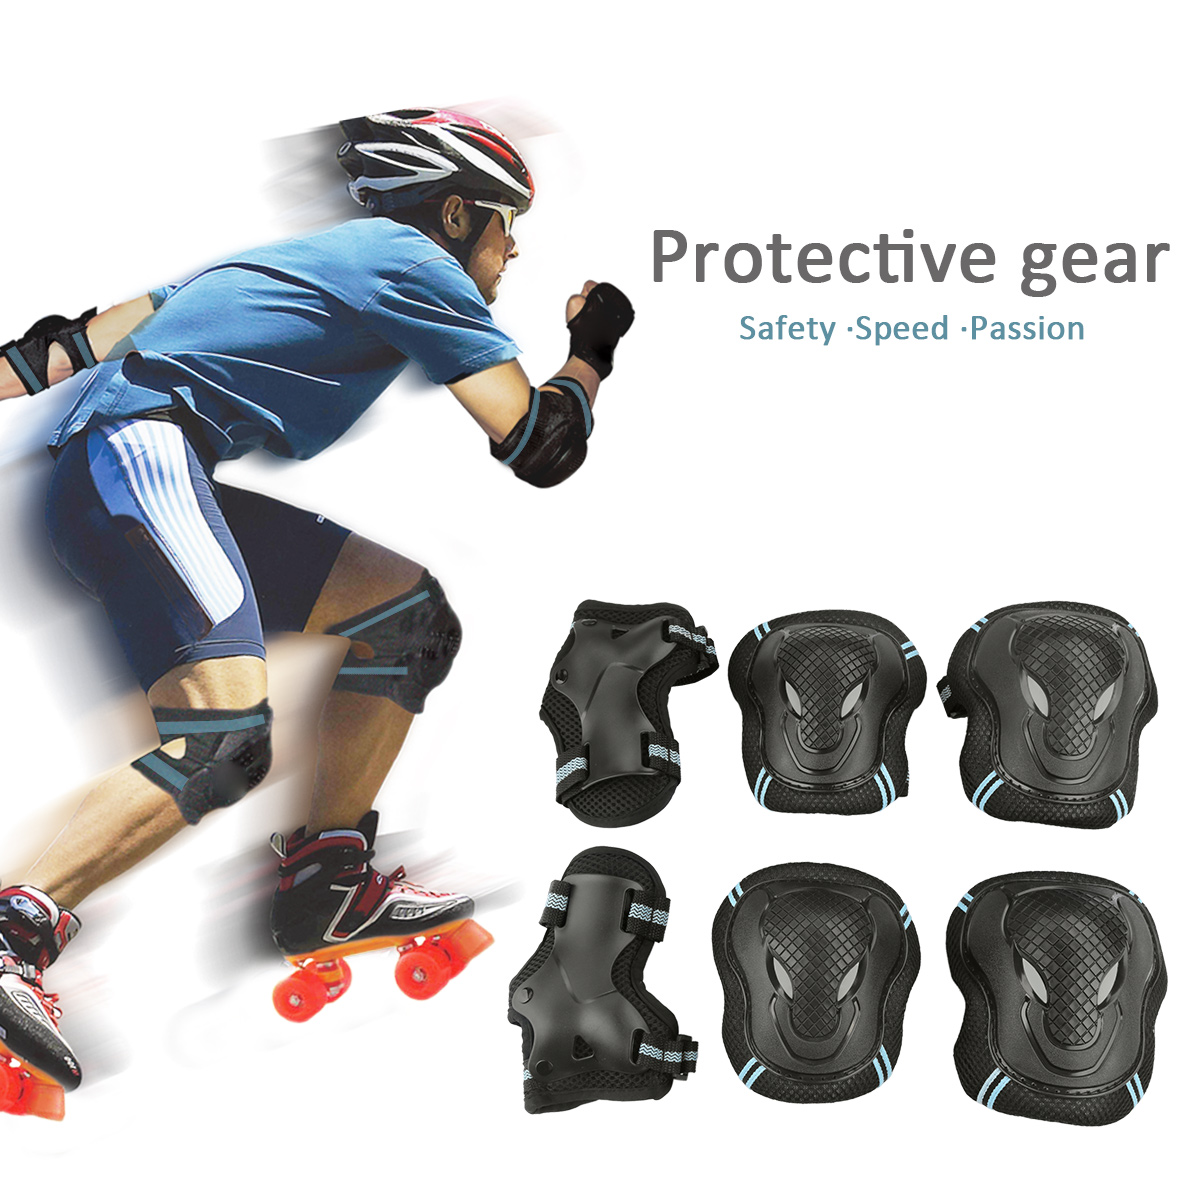 Skateboard Roller Blading Elbow Knee Wrist Protective Safety Gear Pad Guard 6pcs Set for Child Kids Roller by USCOCO